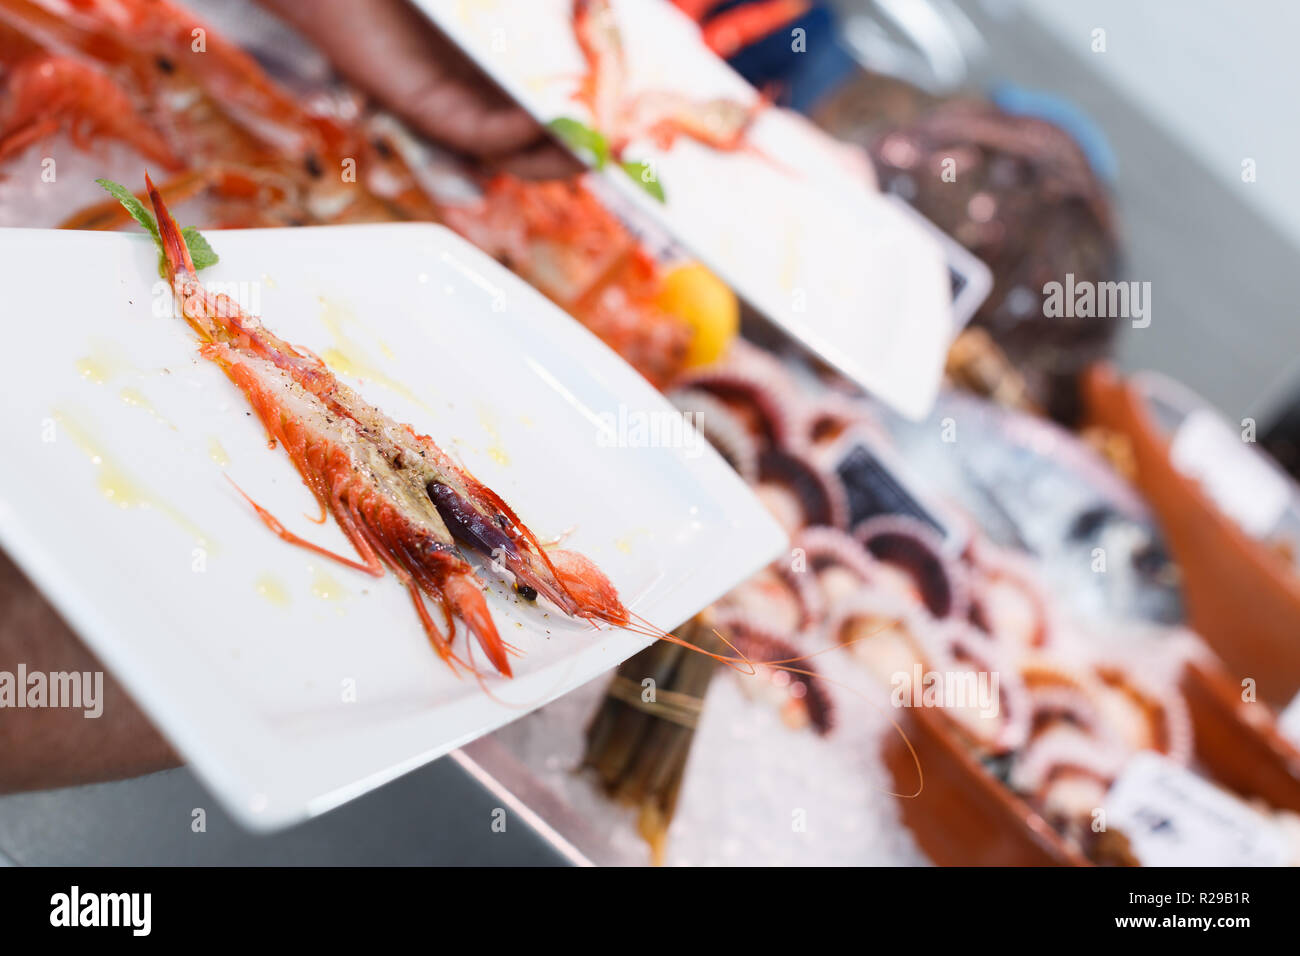 Closeup of fried big prawn with spices on white rectangular